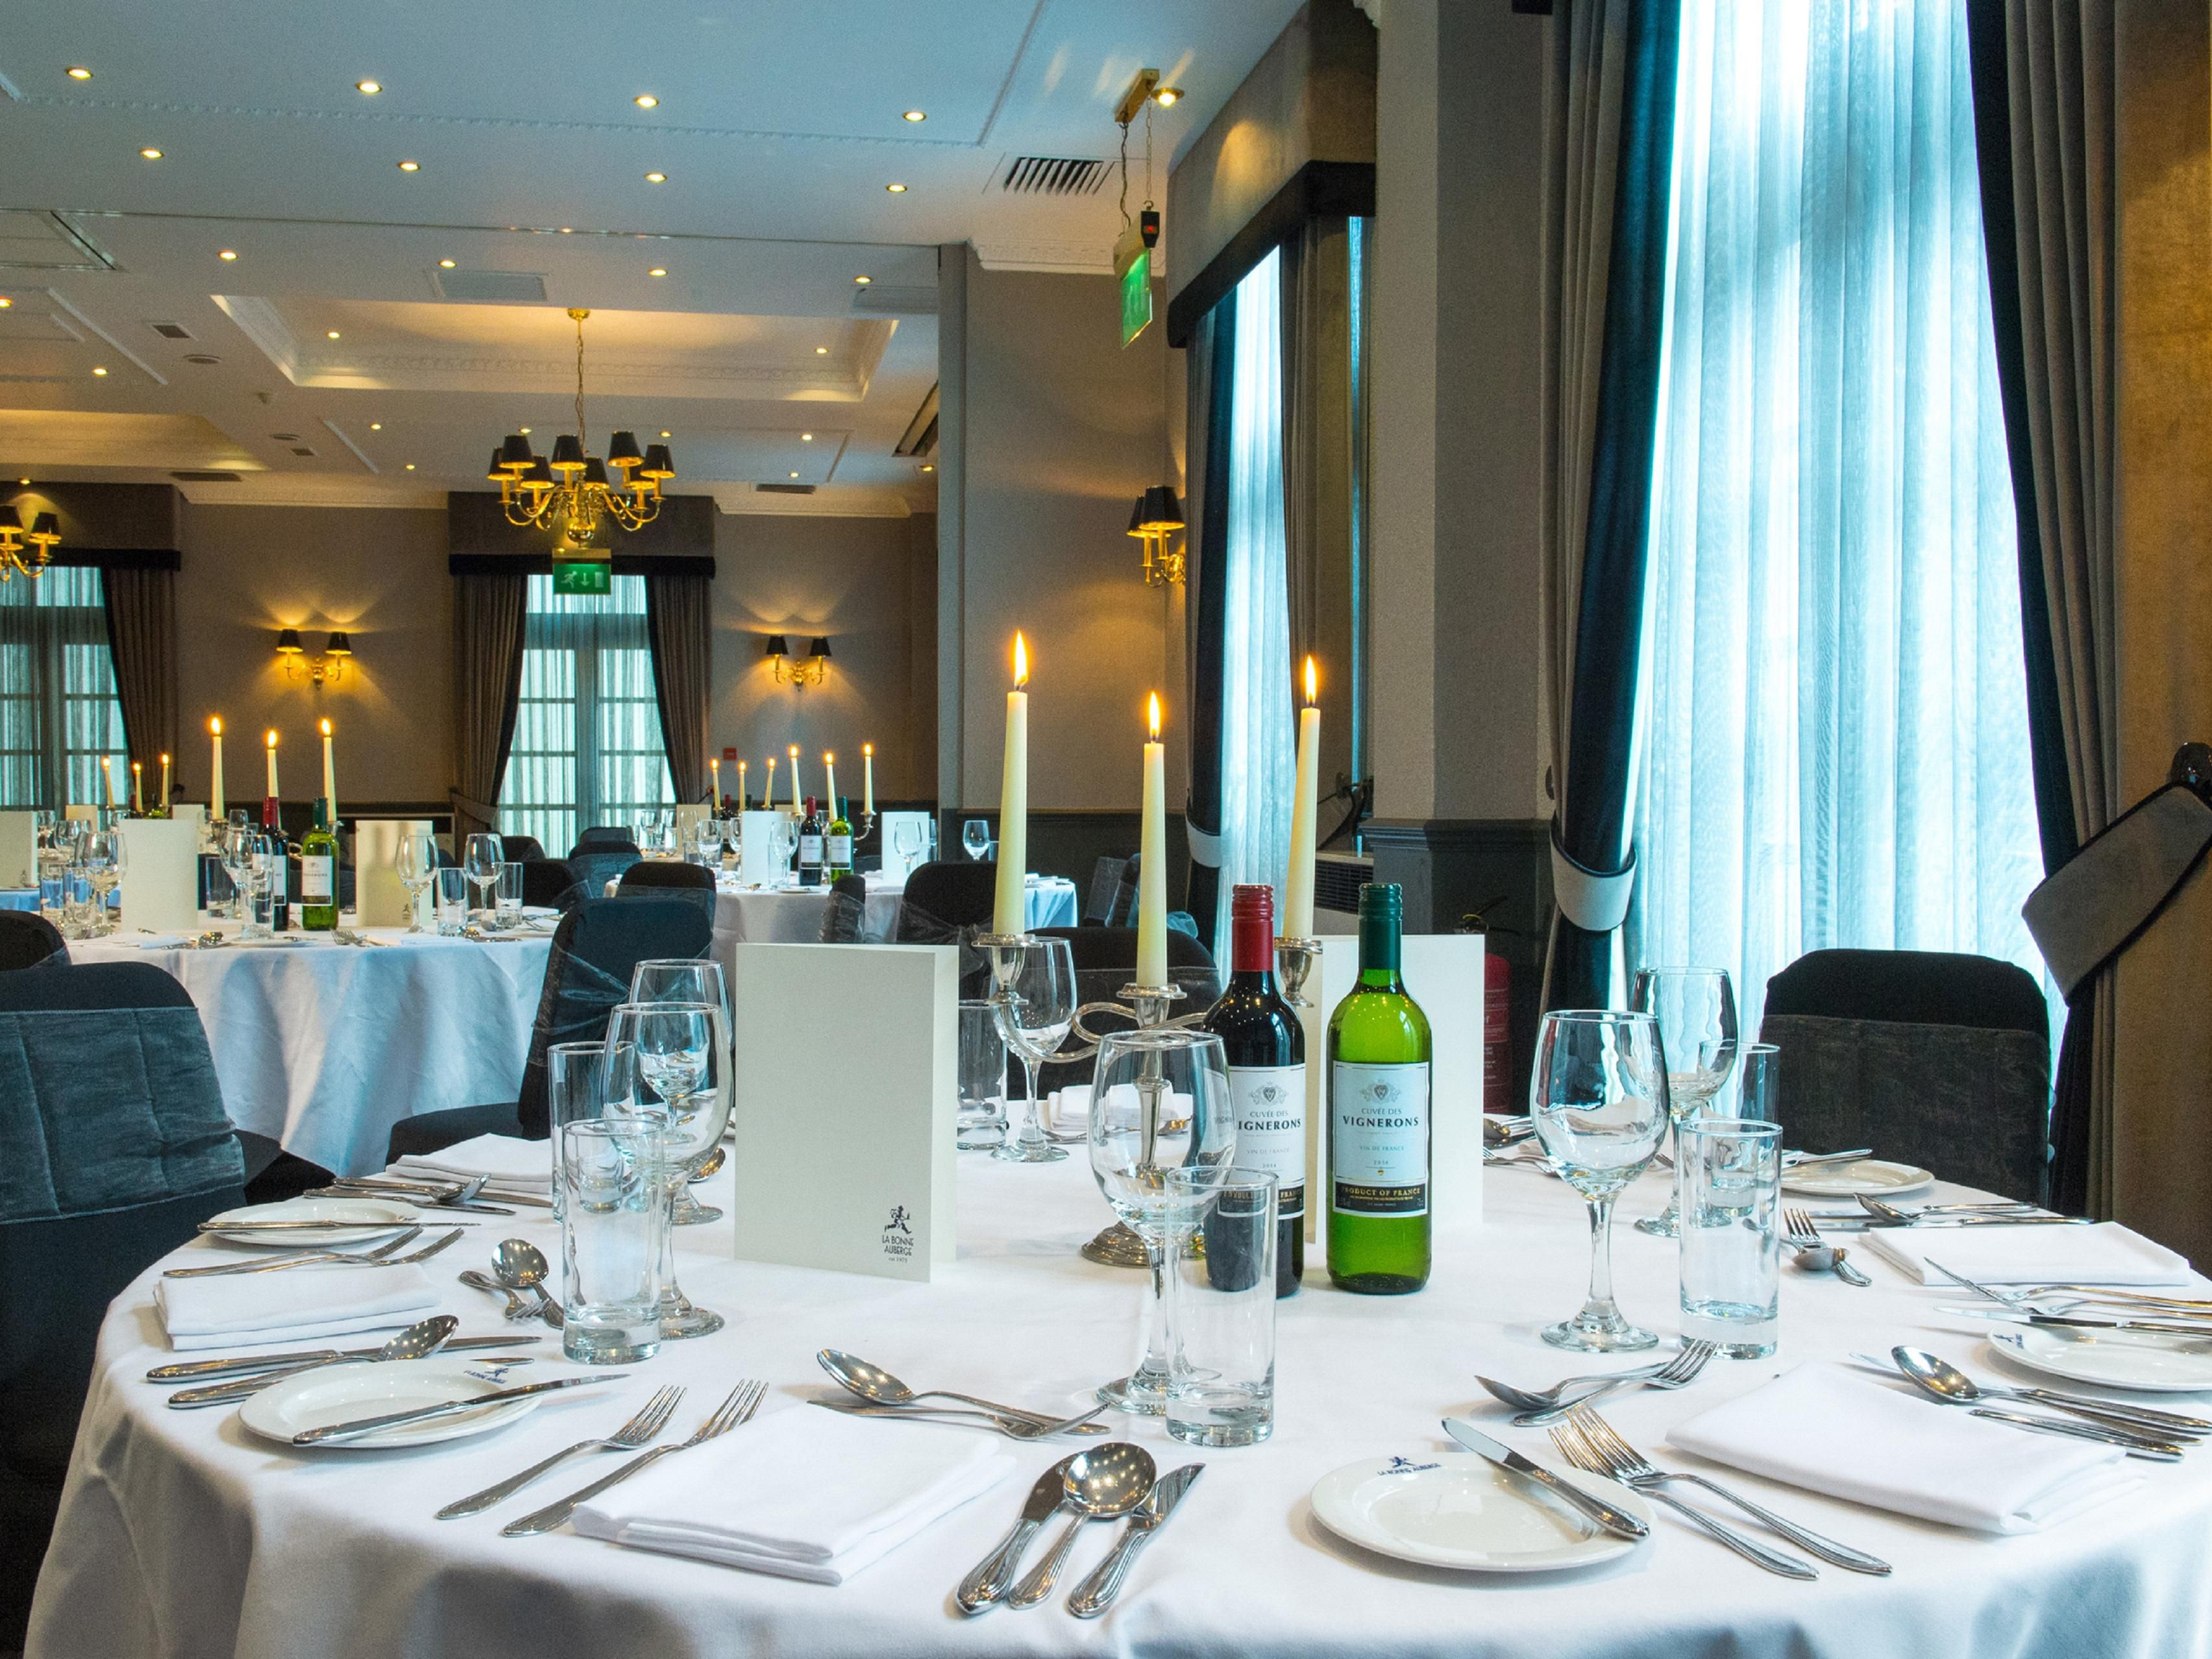 Banqueting and Private Dining available at Holiday Inn Theatreland